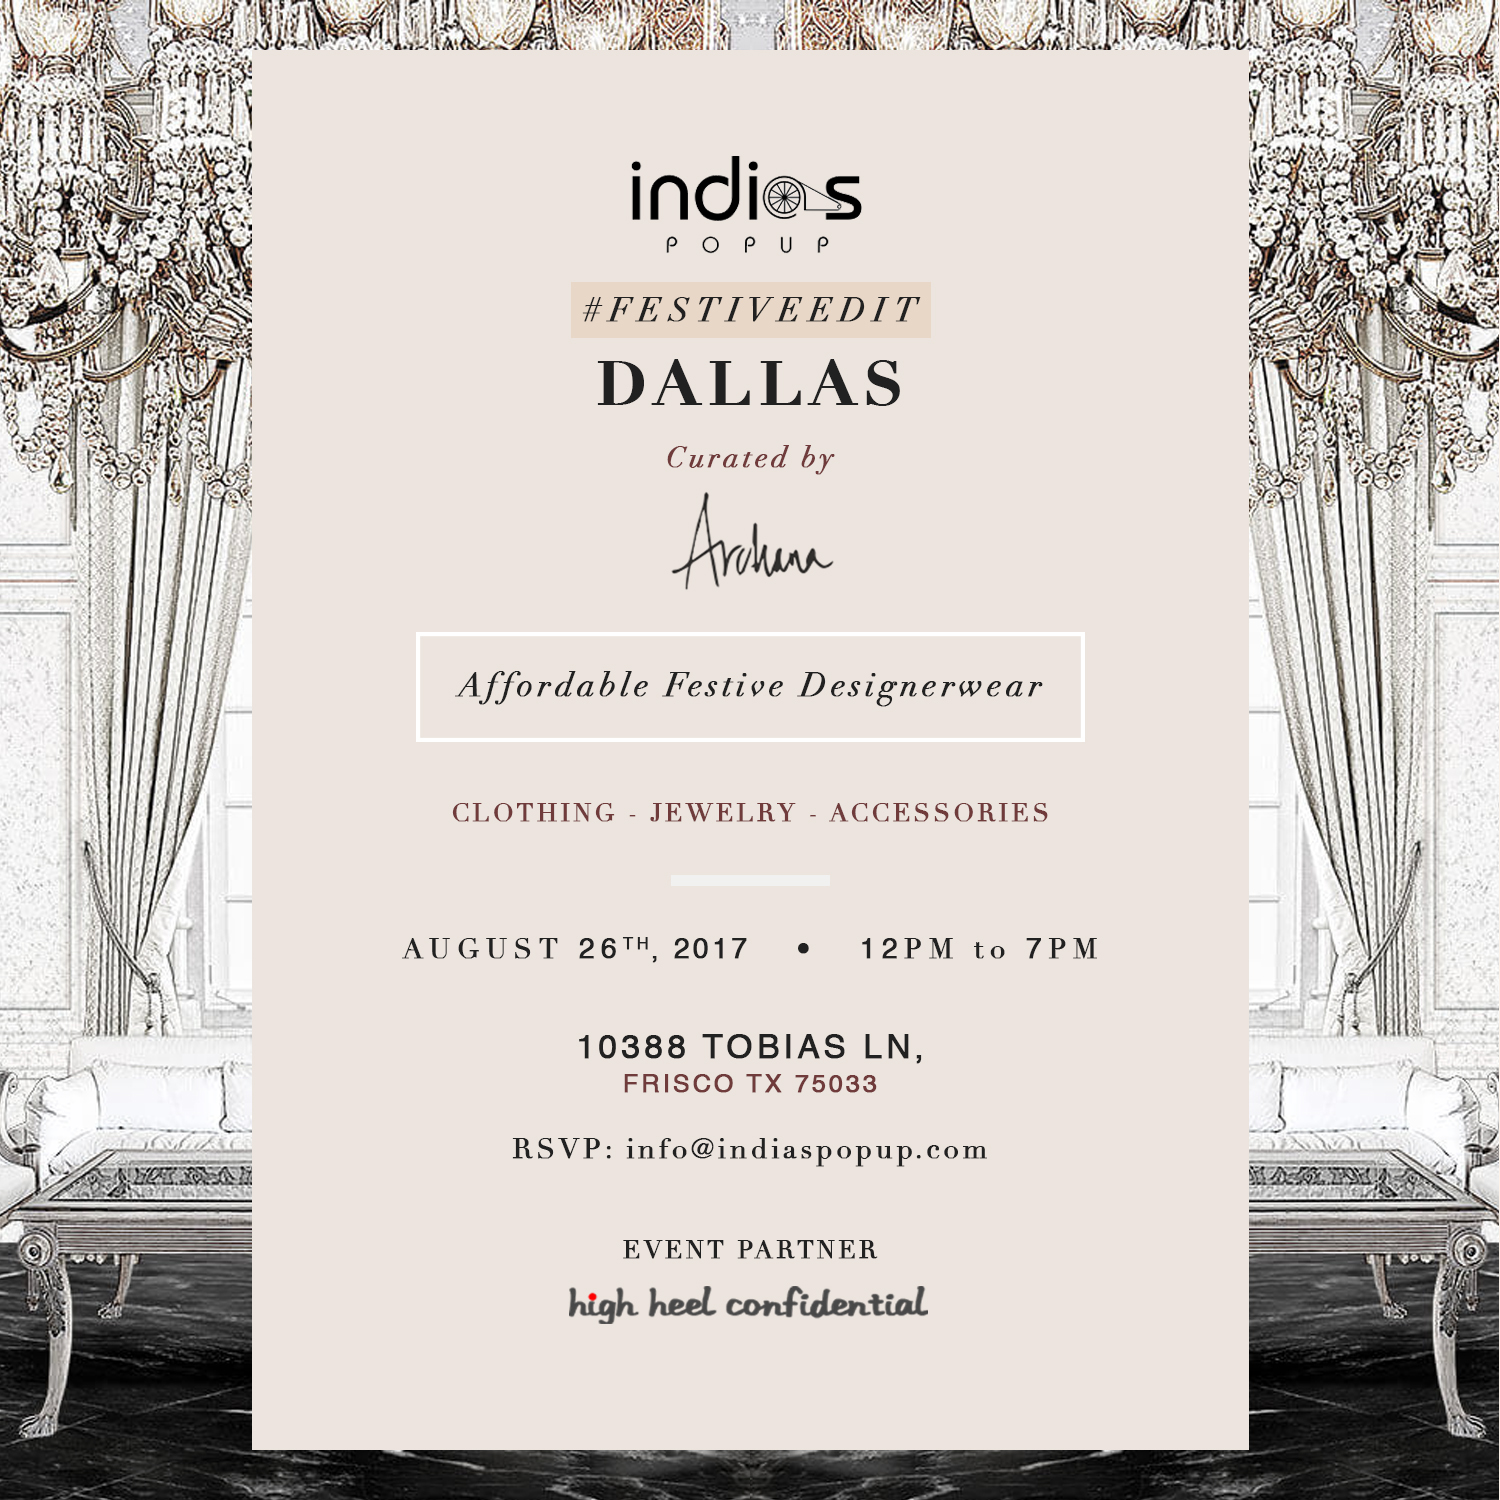 Archana Yenna Presents Luxury Festive Edit Dallas 2017